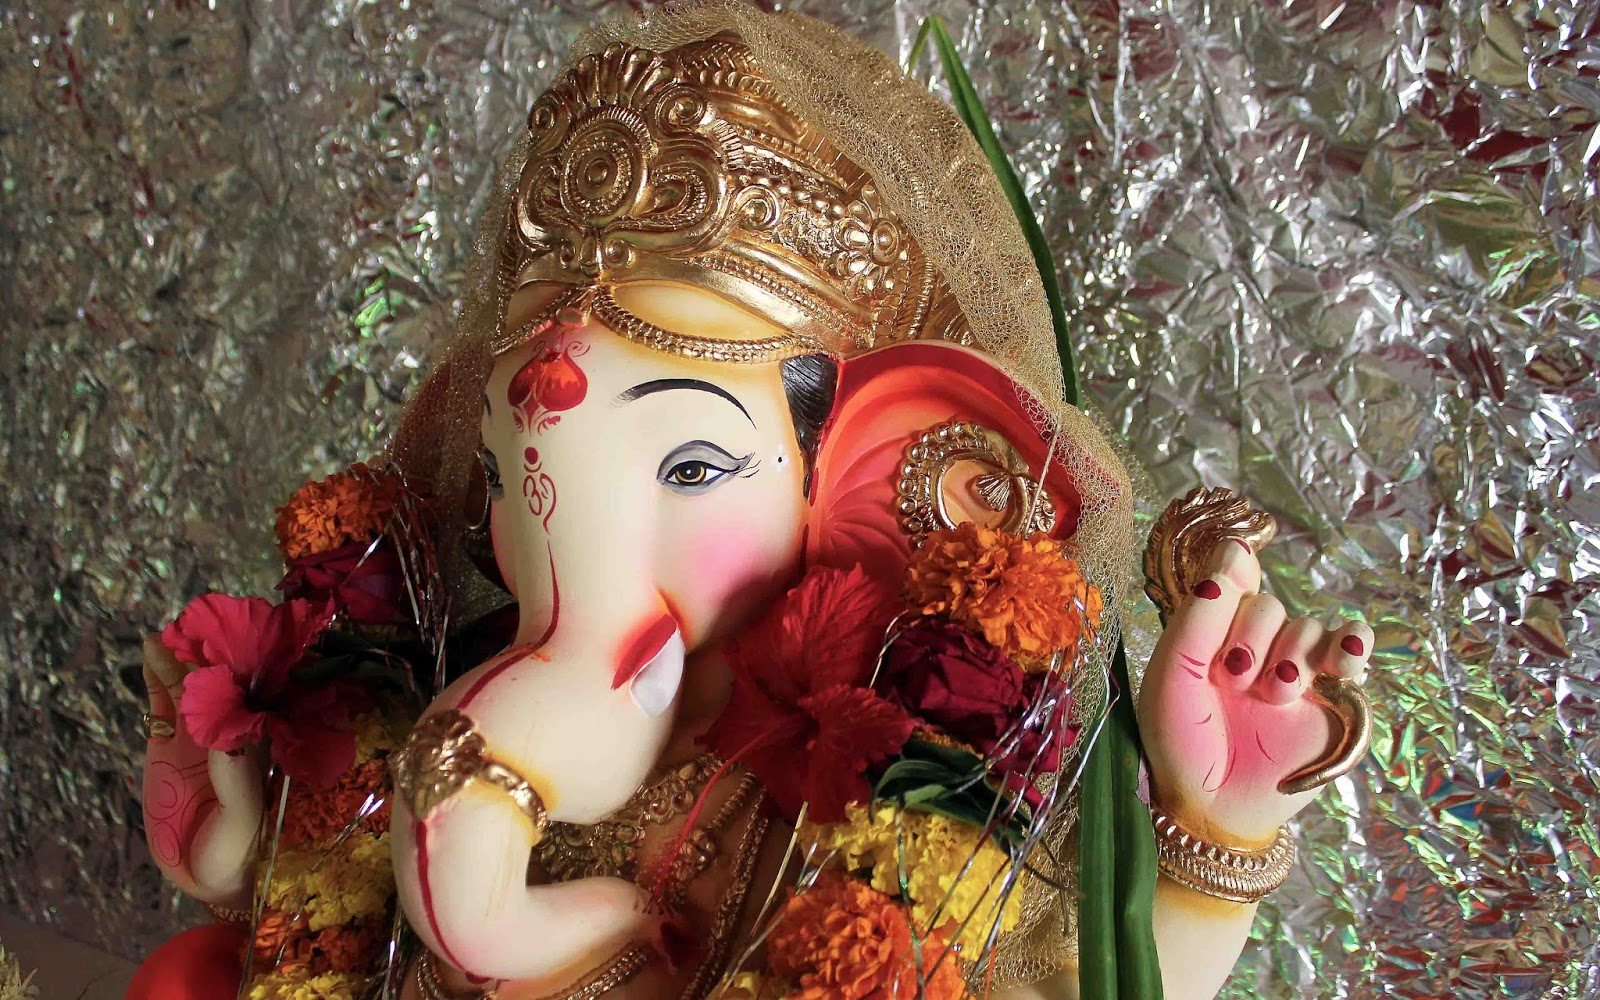 Hd wallpaper ganesh - Browse Ganesh 3d Wallpaper Free Download